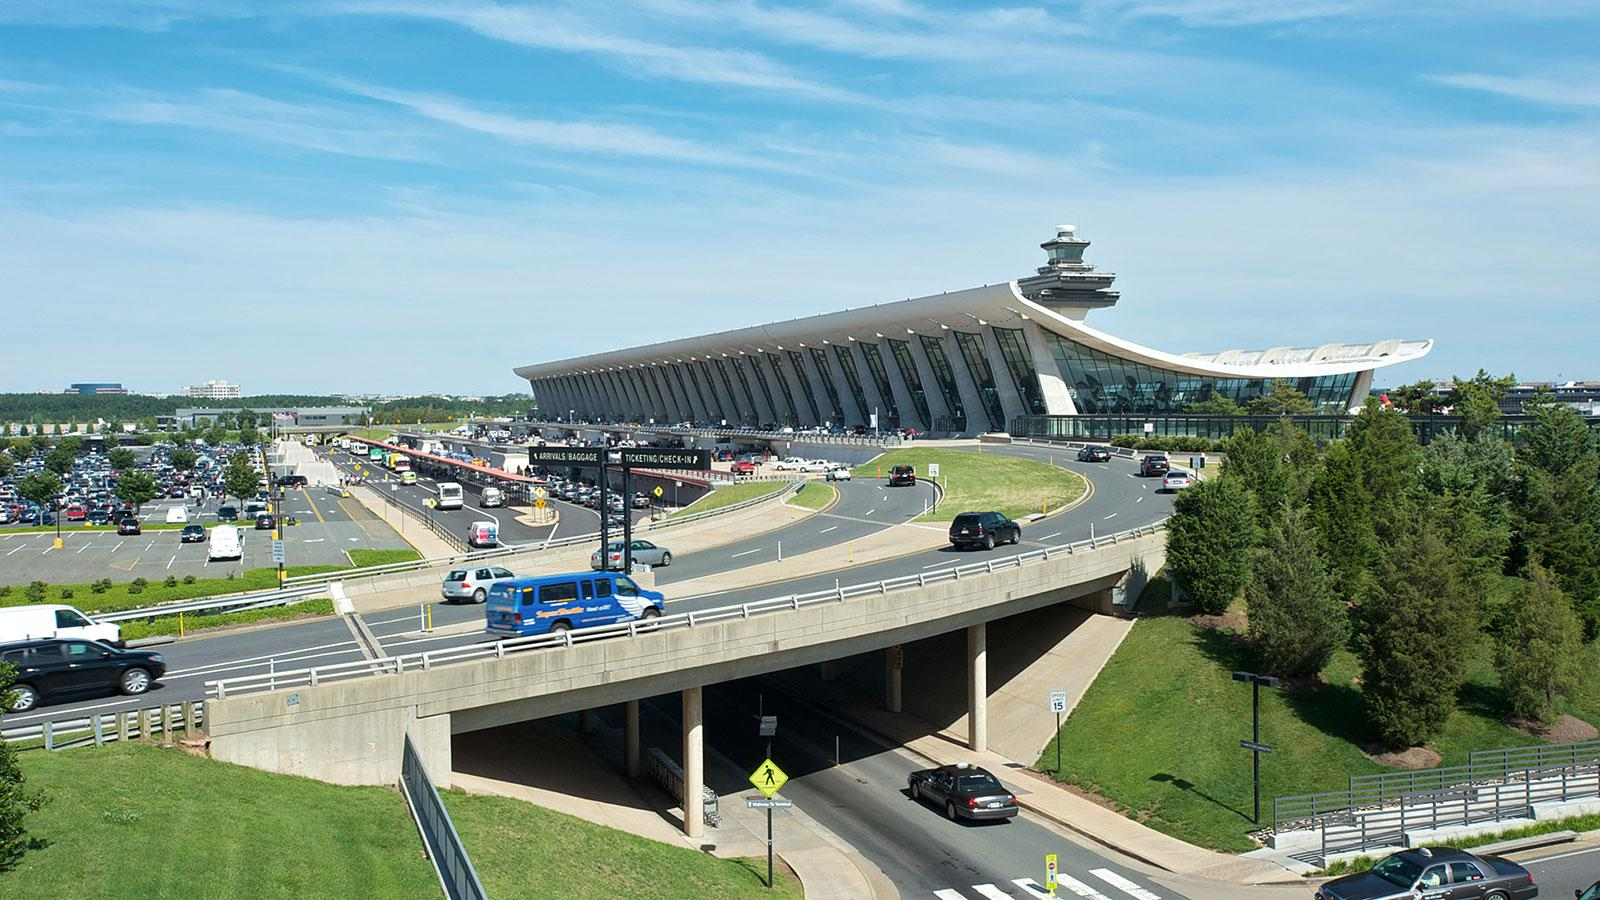 Dulles International Airport | Ten Buildings That Changed America | WTTW  Chicago